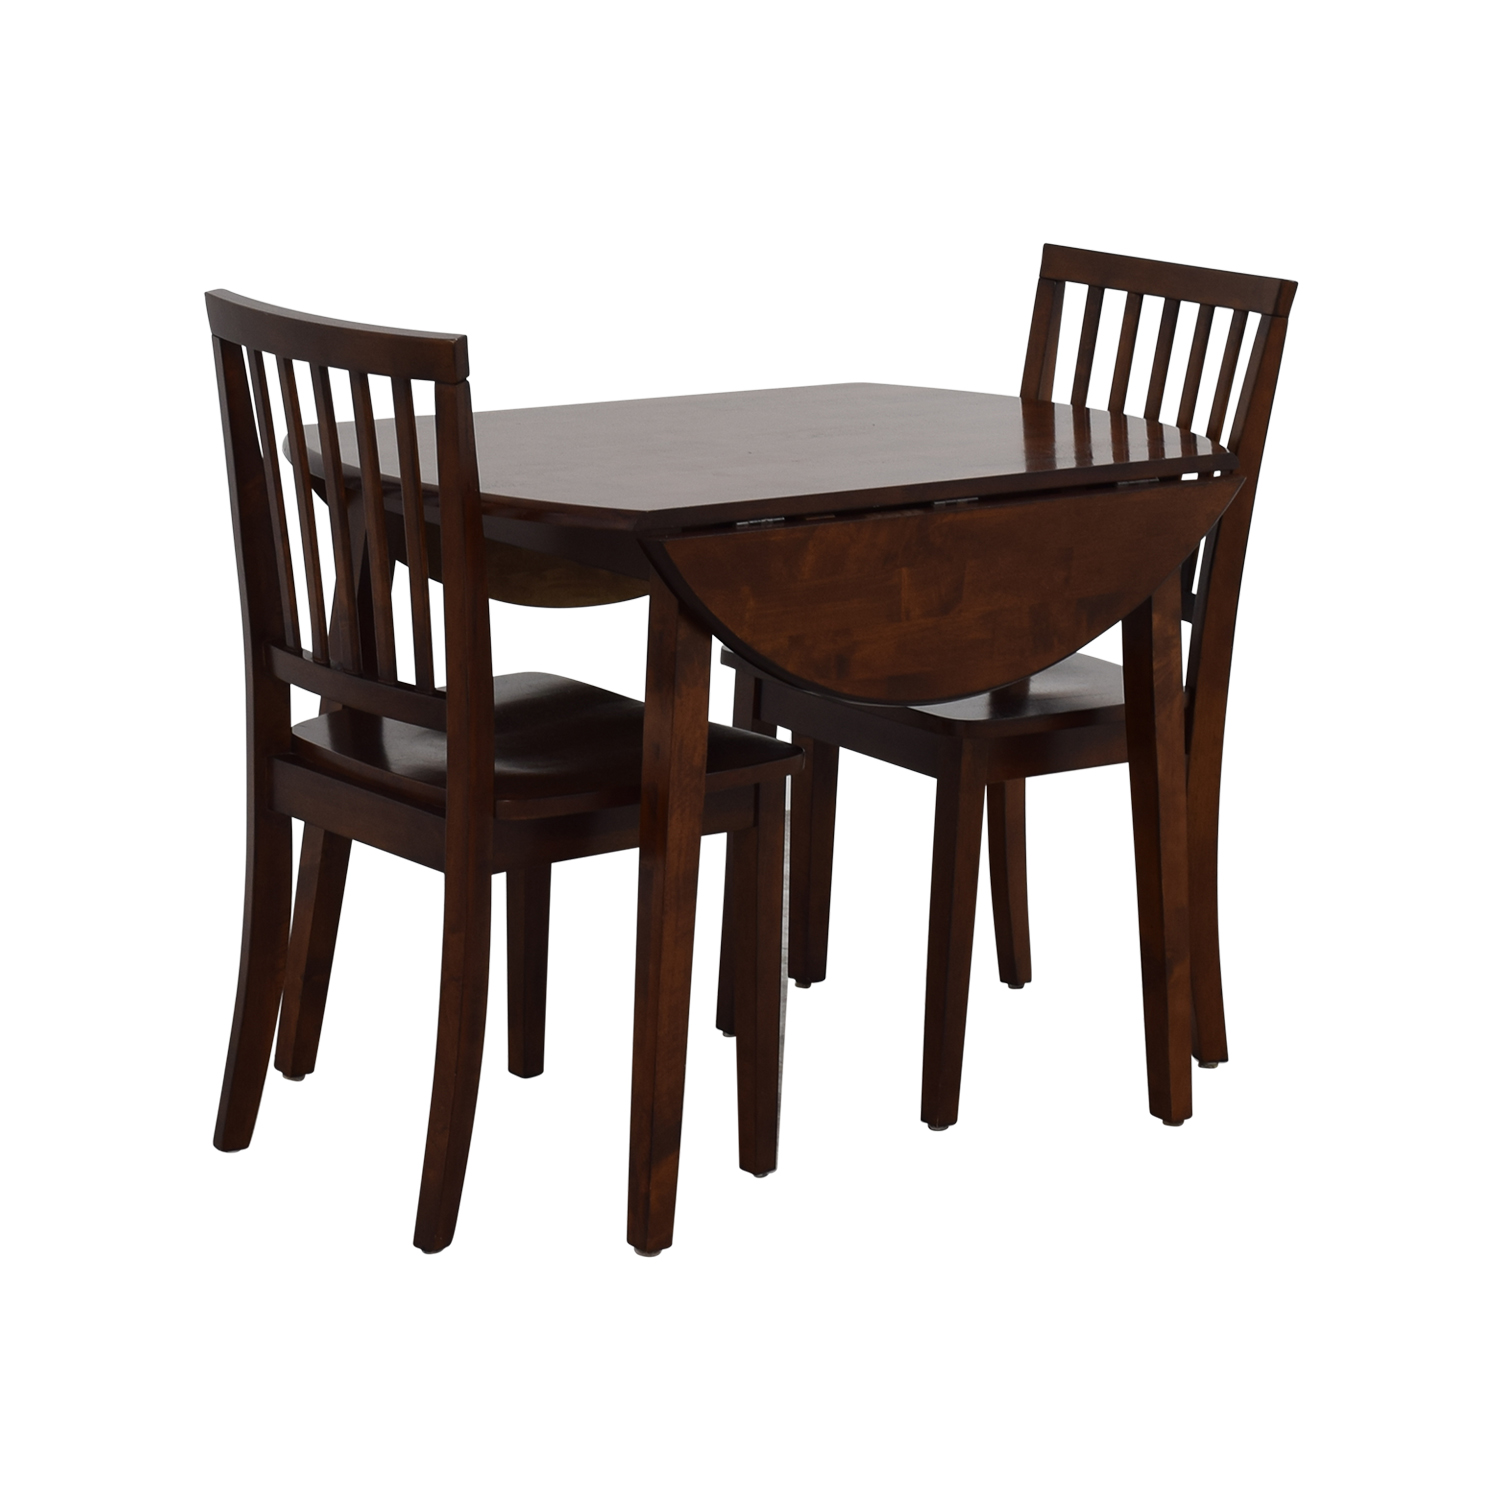 Breakfast Table and Chairs for sale